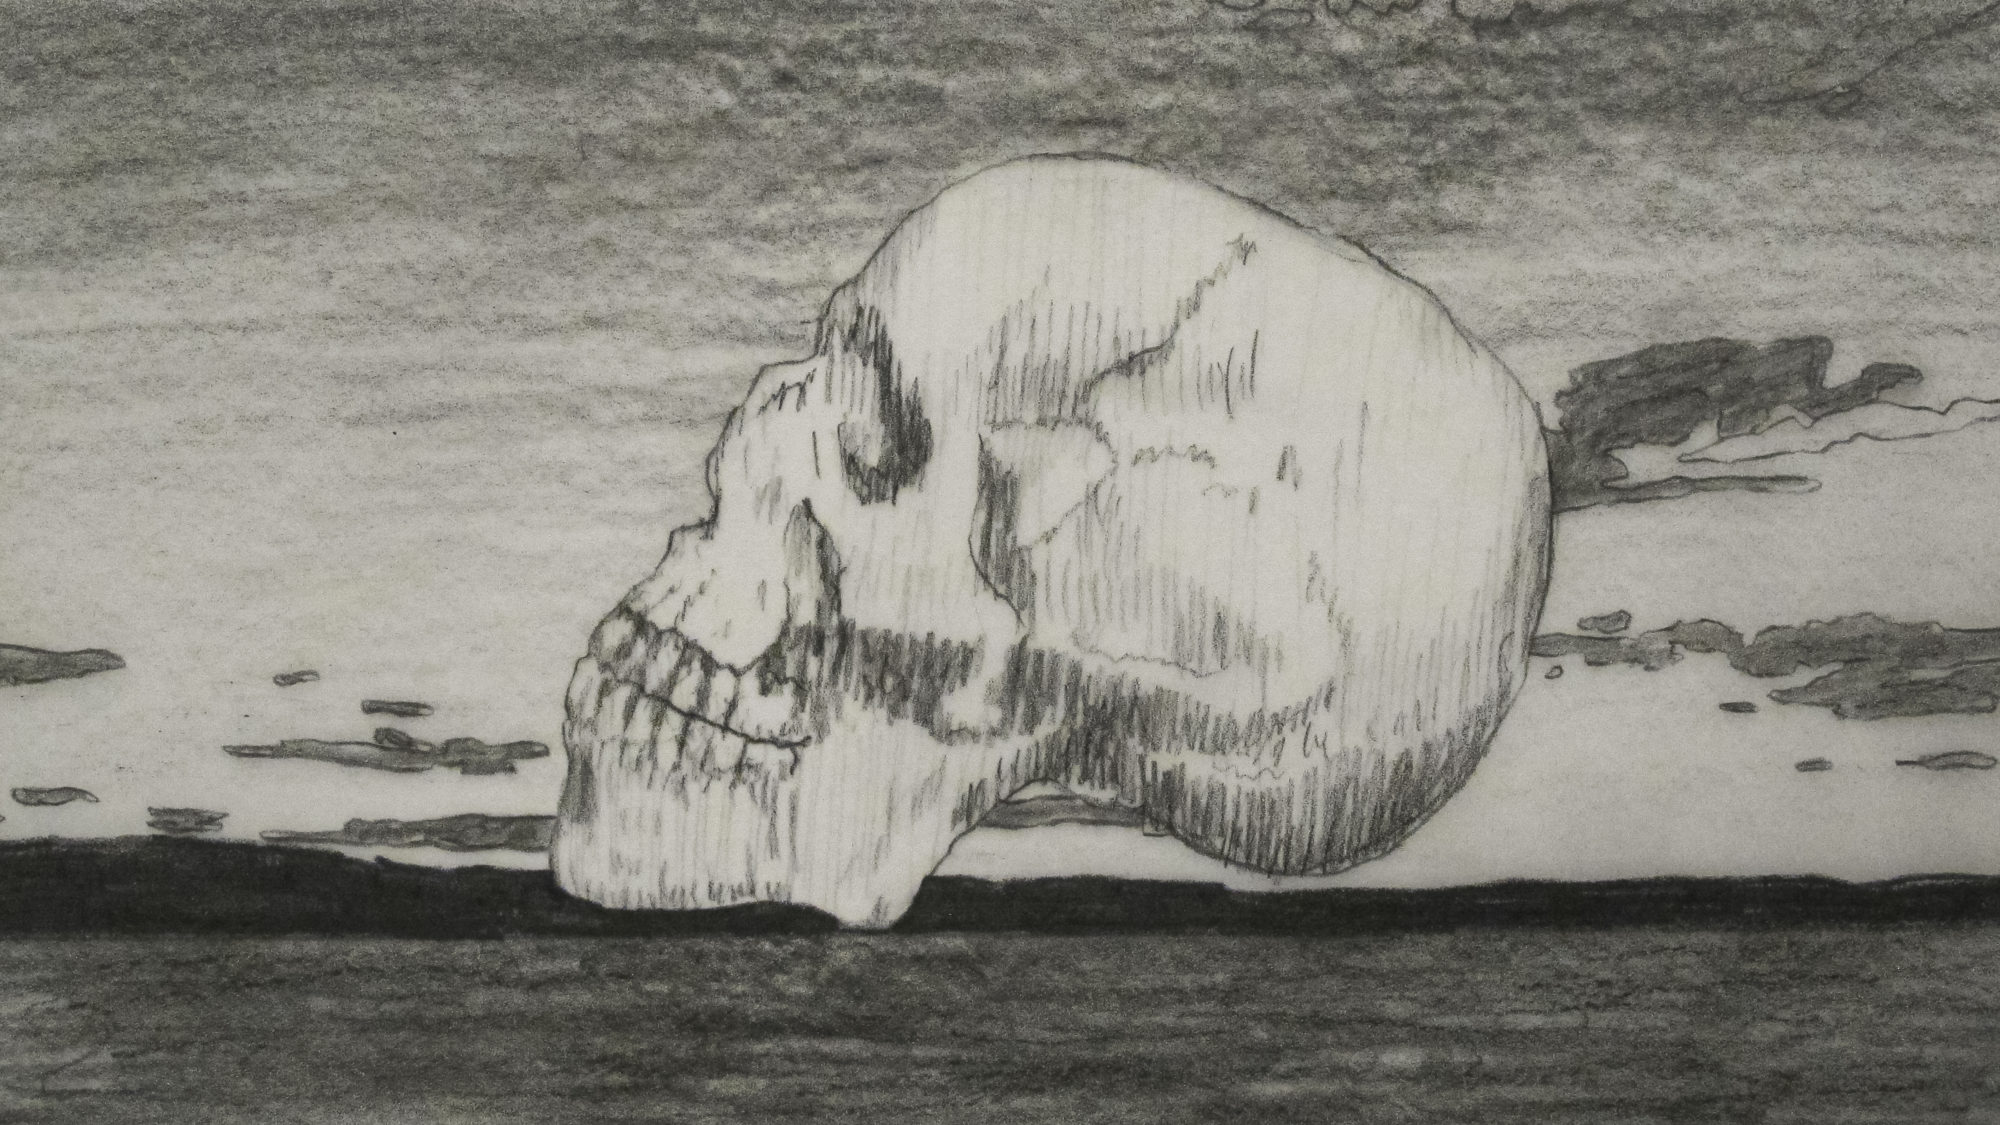 Drawing of side view of a human skull.